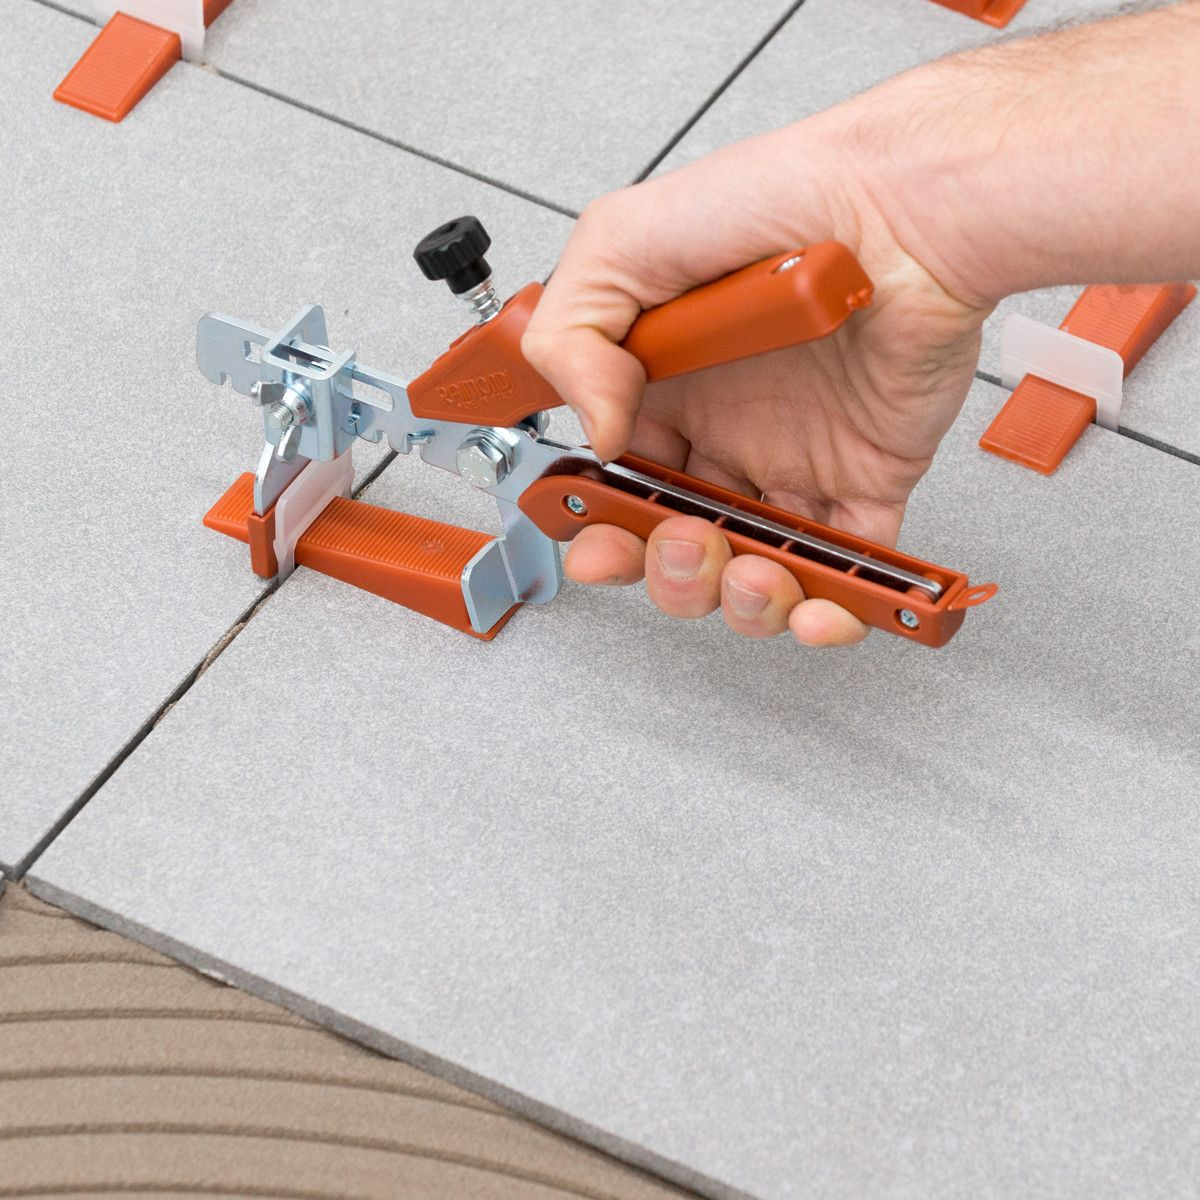 Rlsconkit116 raimondi 116 spacer tile leveling system kit tile raimondi tile leveling system contractors kit rls rls contractors kit includes 250 wedges dailygadgetfo Image collections